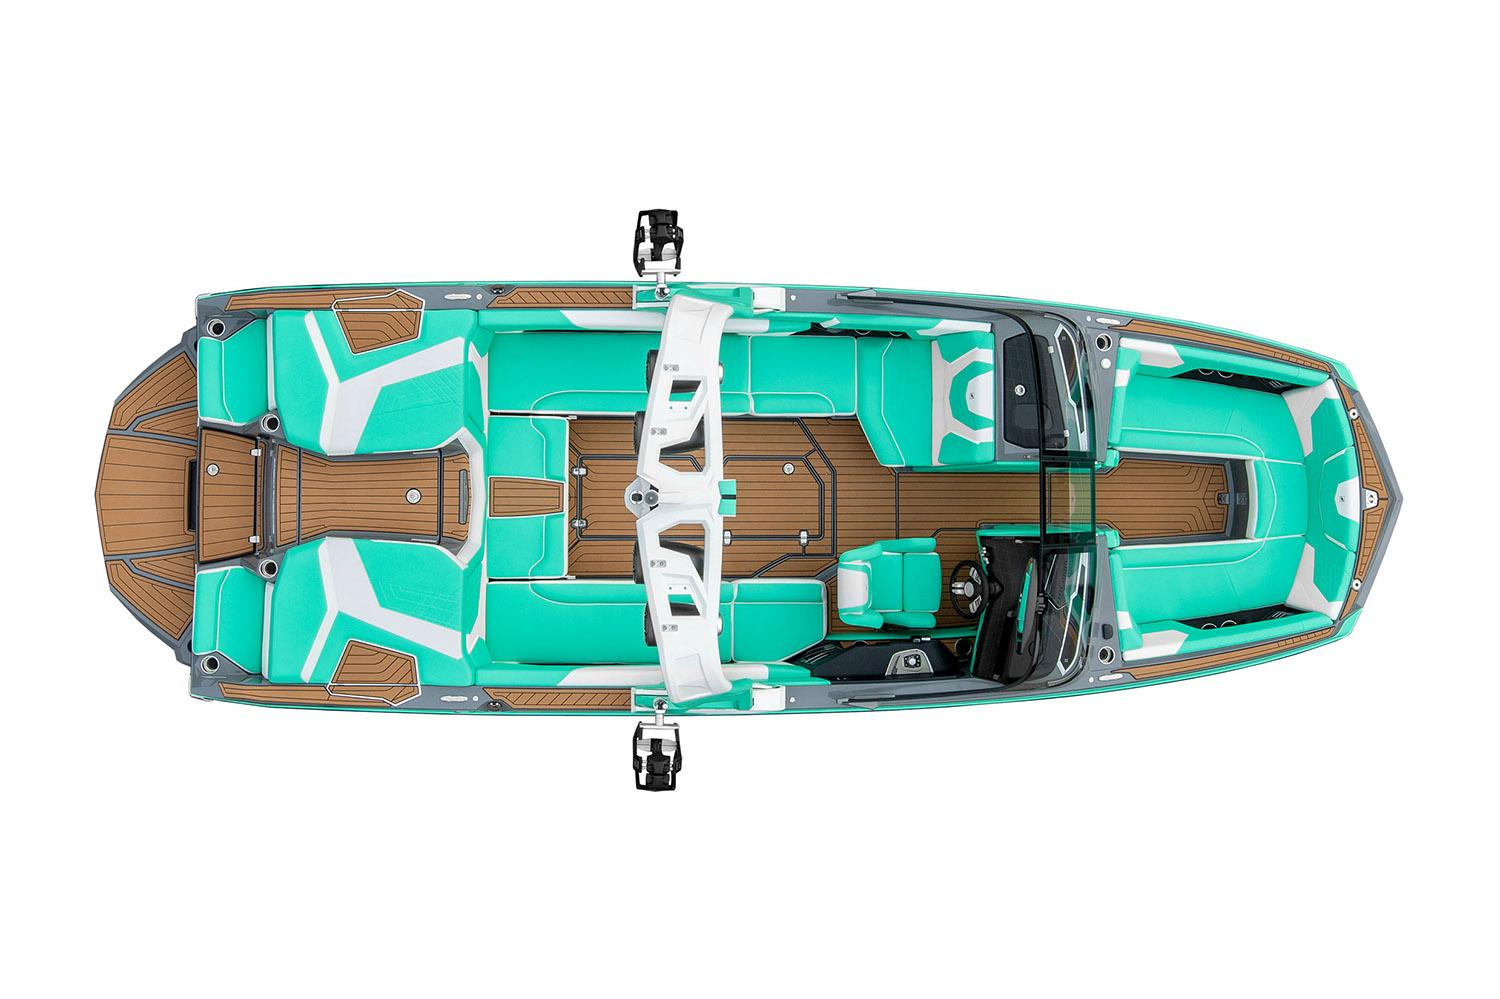 2021 Nautique Super Air Nautique G25 in Santa Rosa, California - Photo 15